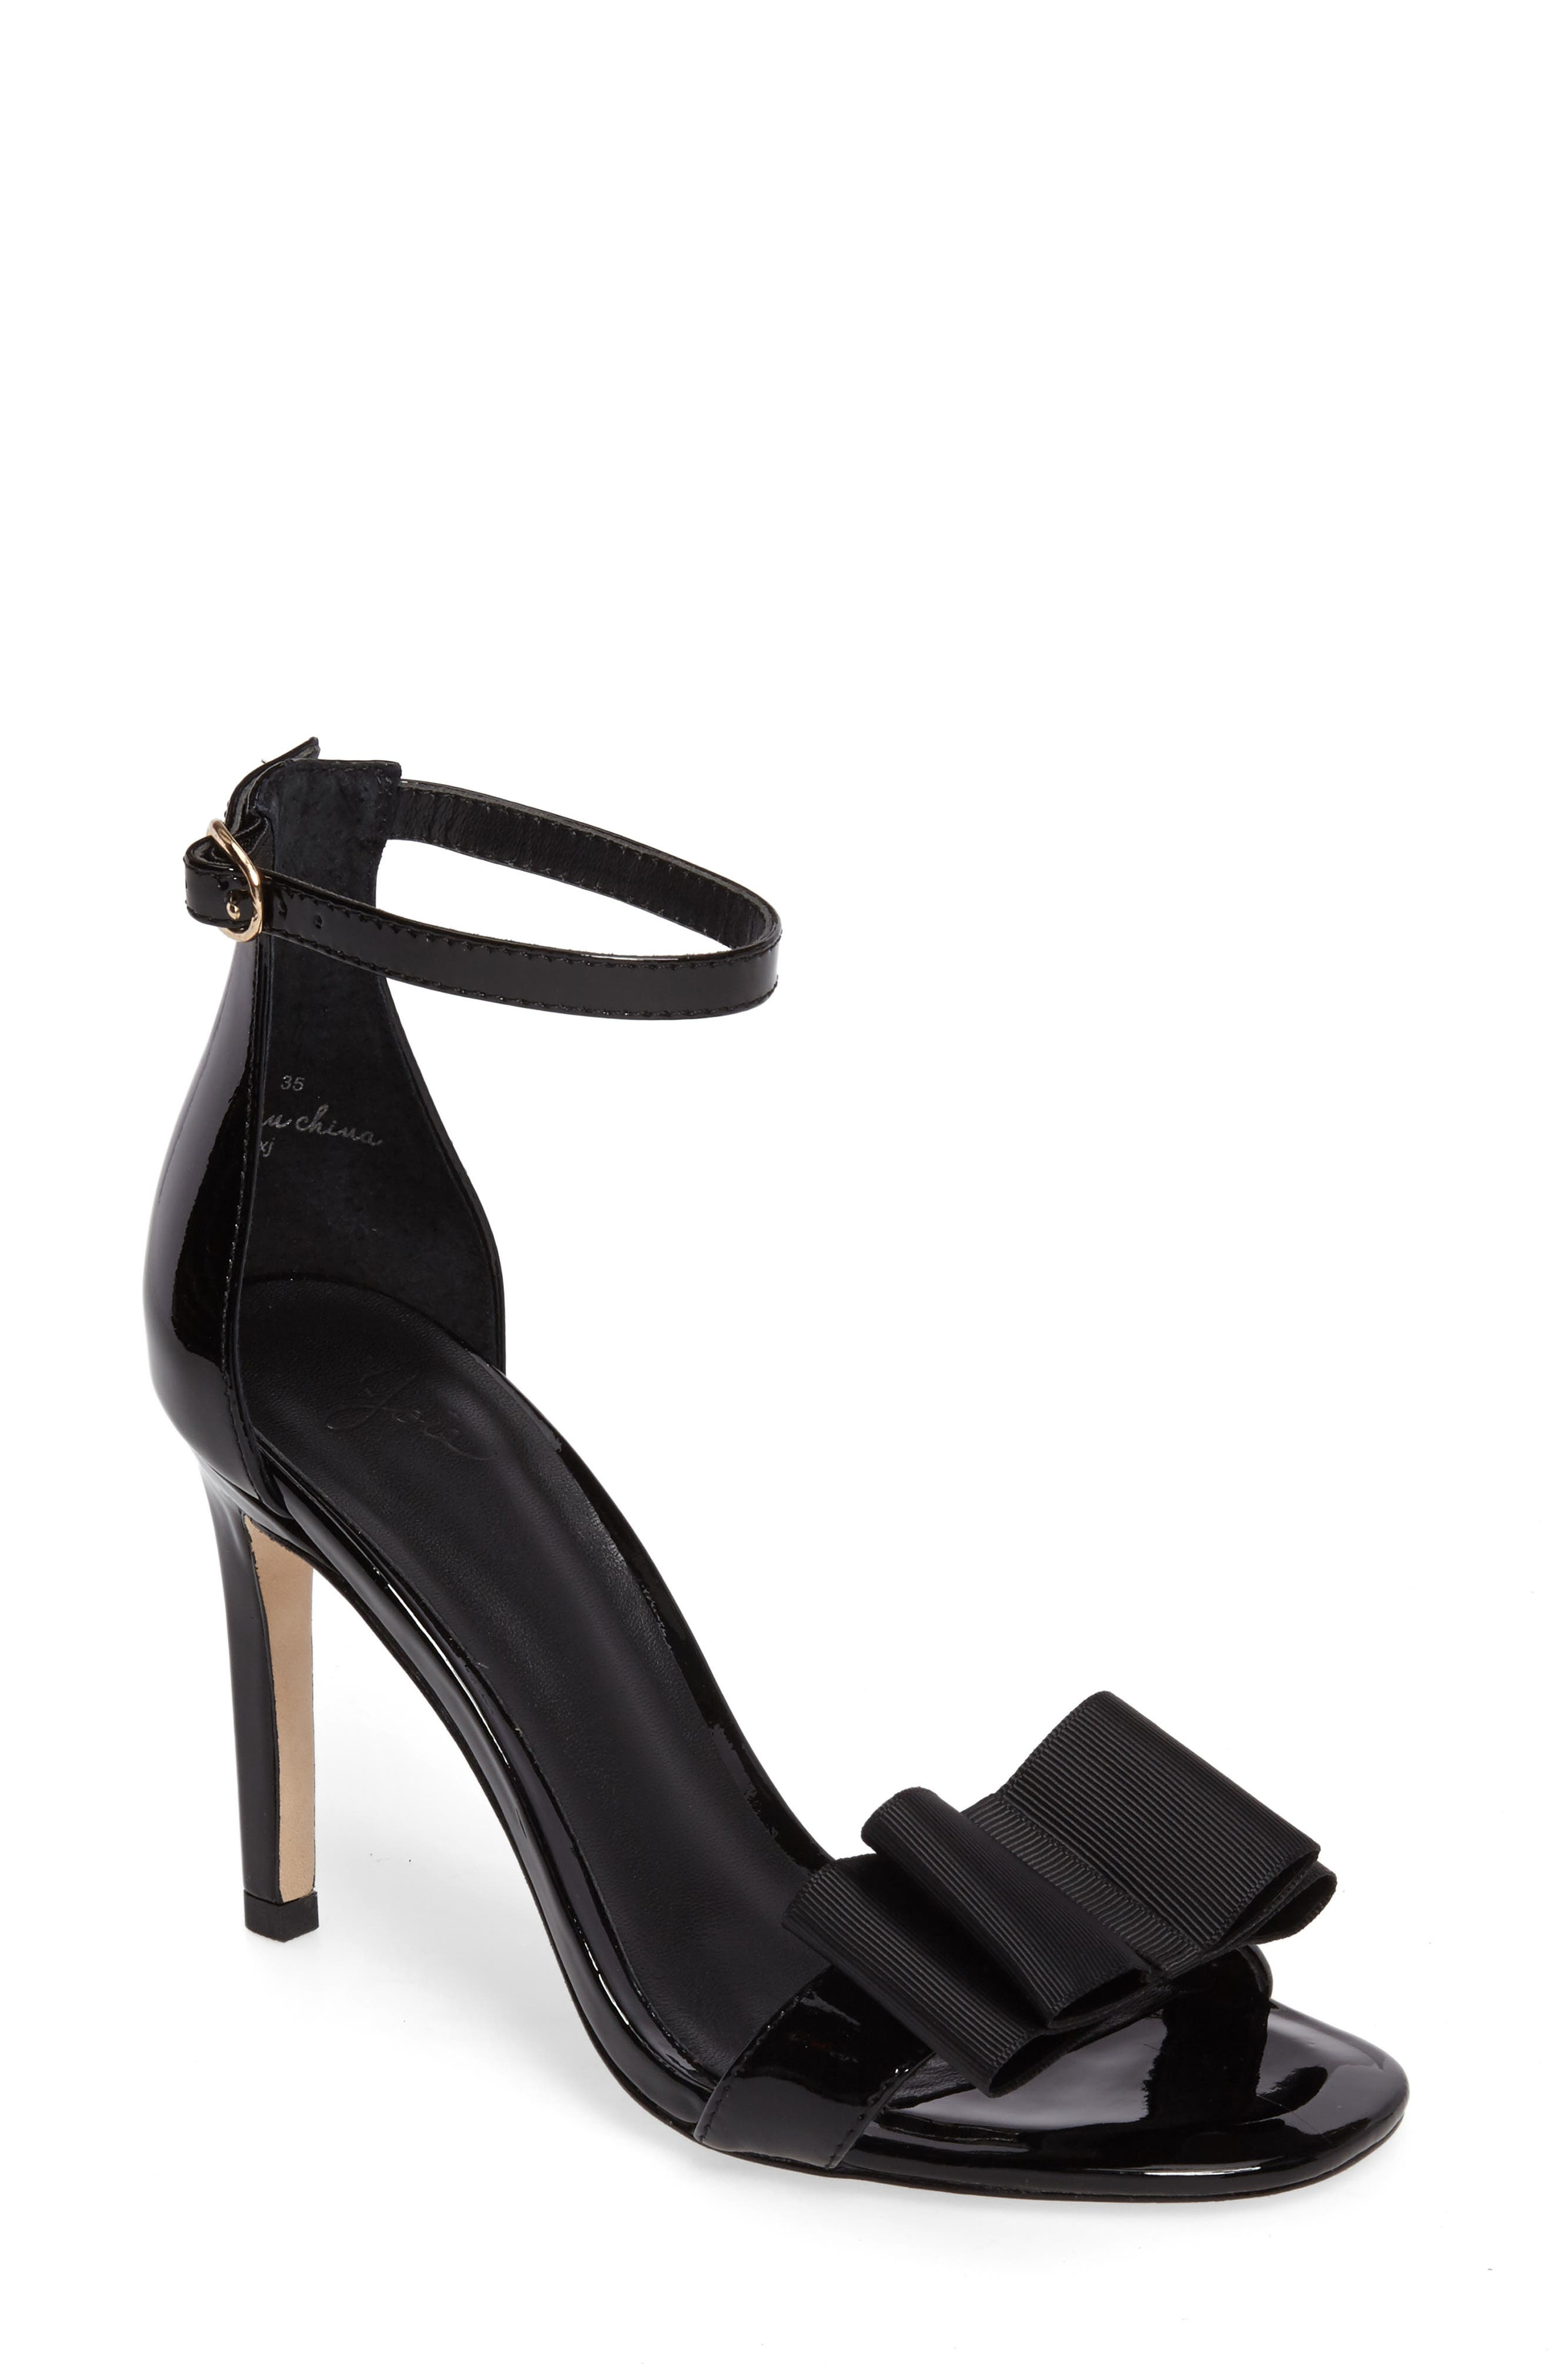 Alternate Image 1 Selected - Joie Akane Bow Sandal (Women)